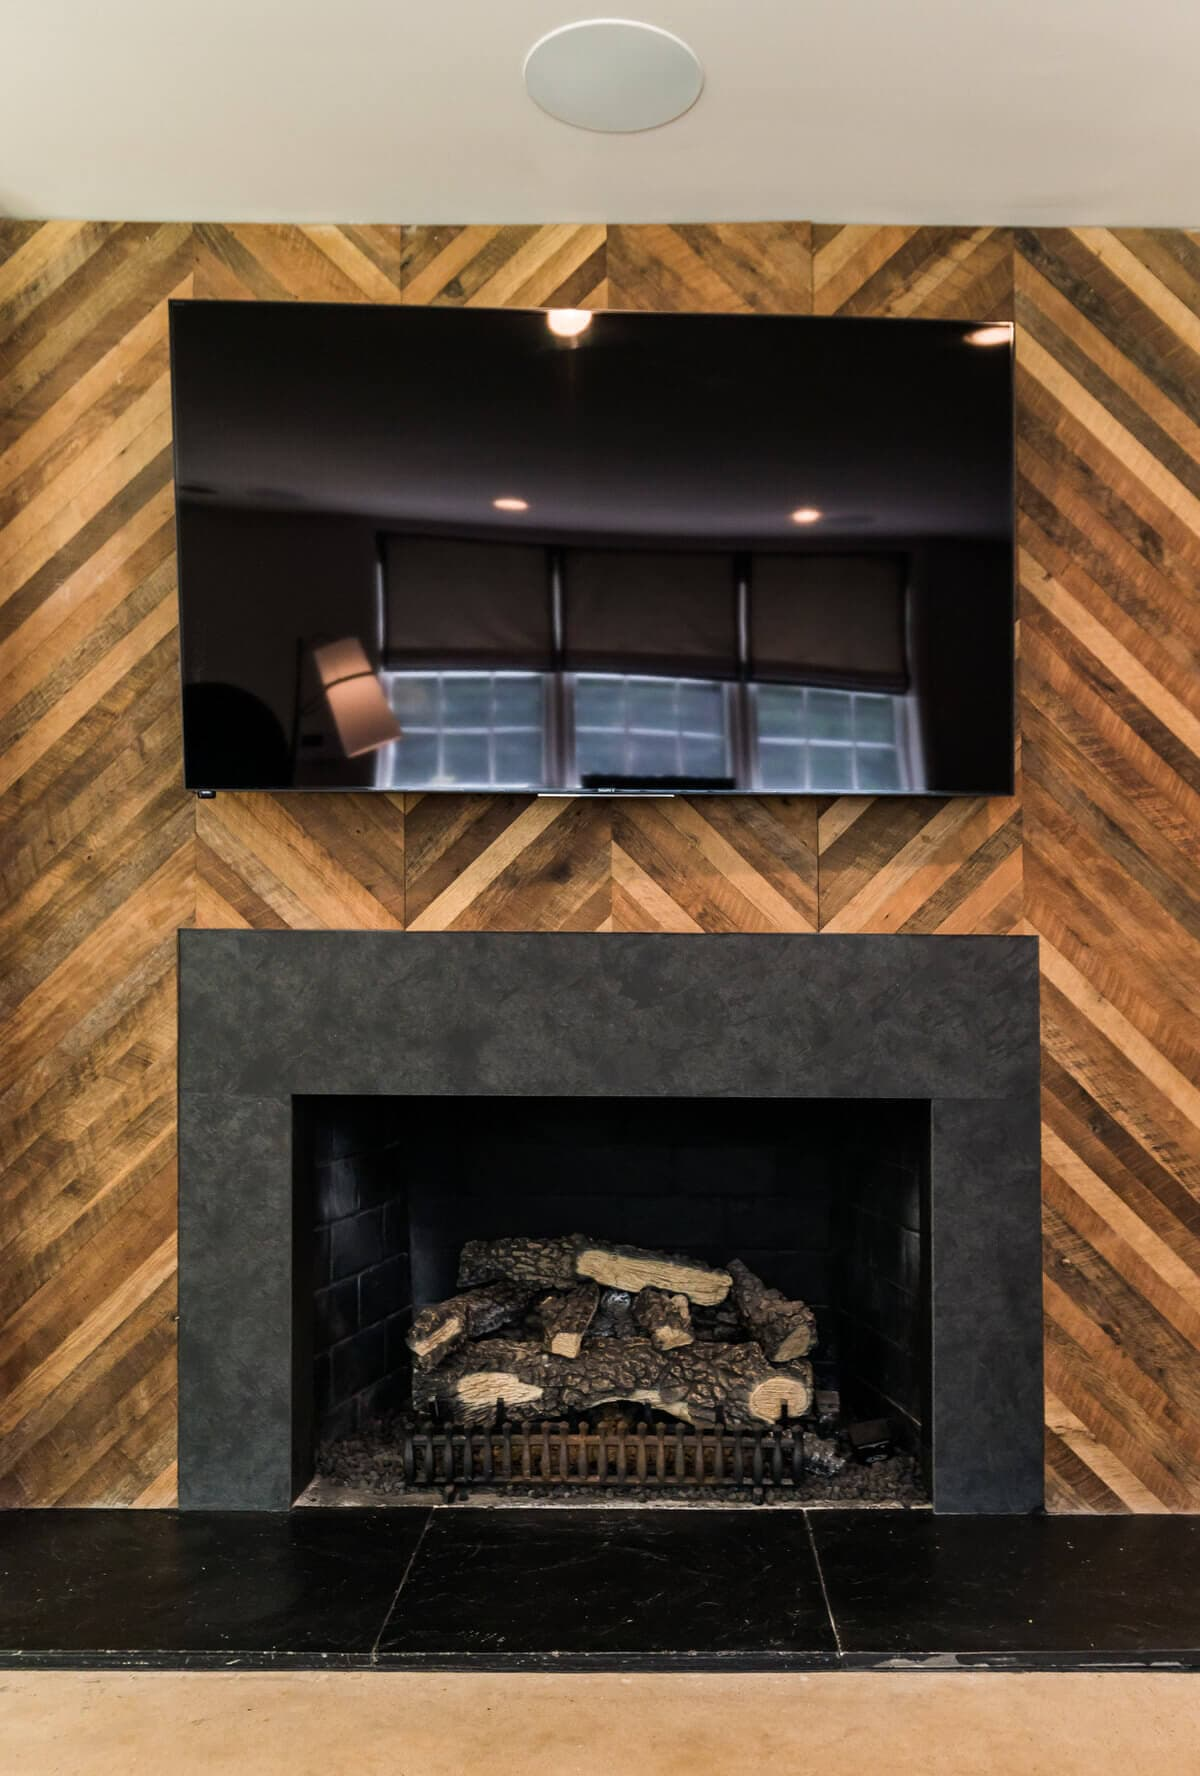 Reclaimed patterned accent wall panels around a fireplace in greenville, sc